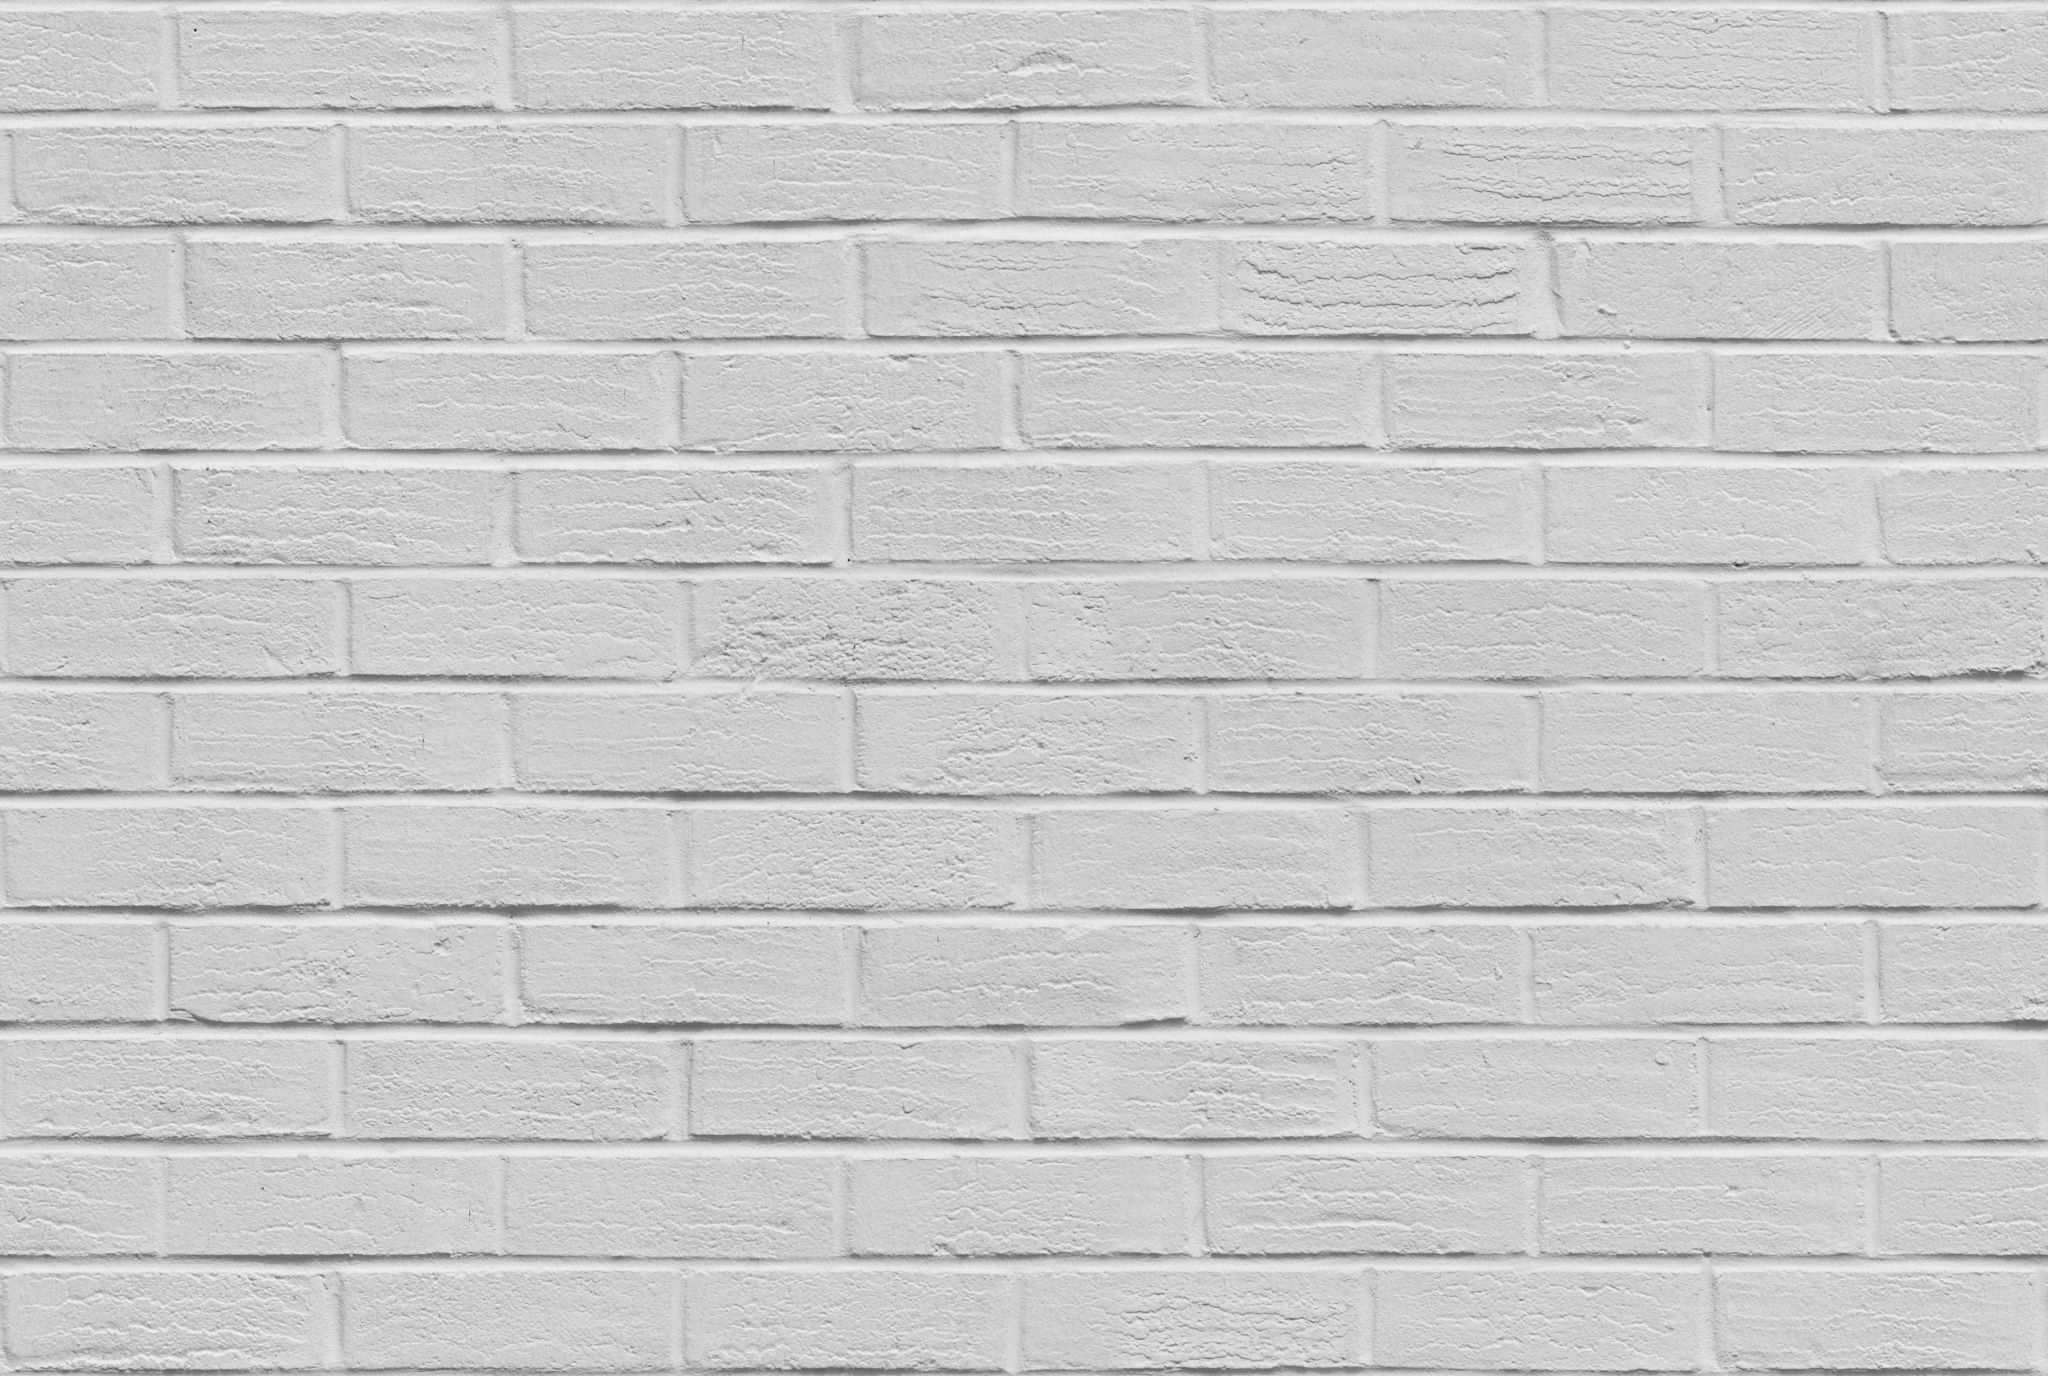 Brick Wallpaper Desktop Backgrounds